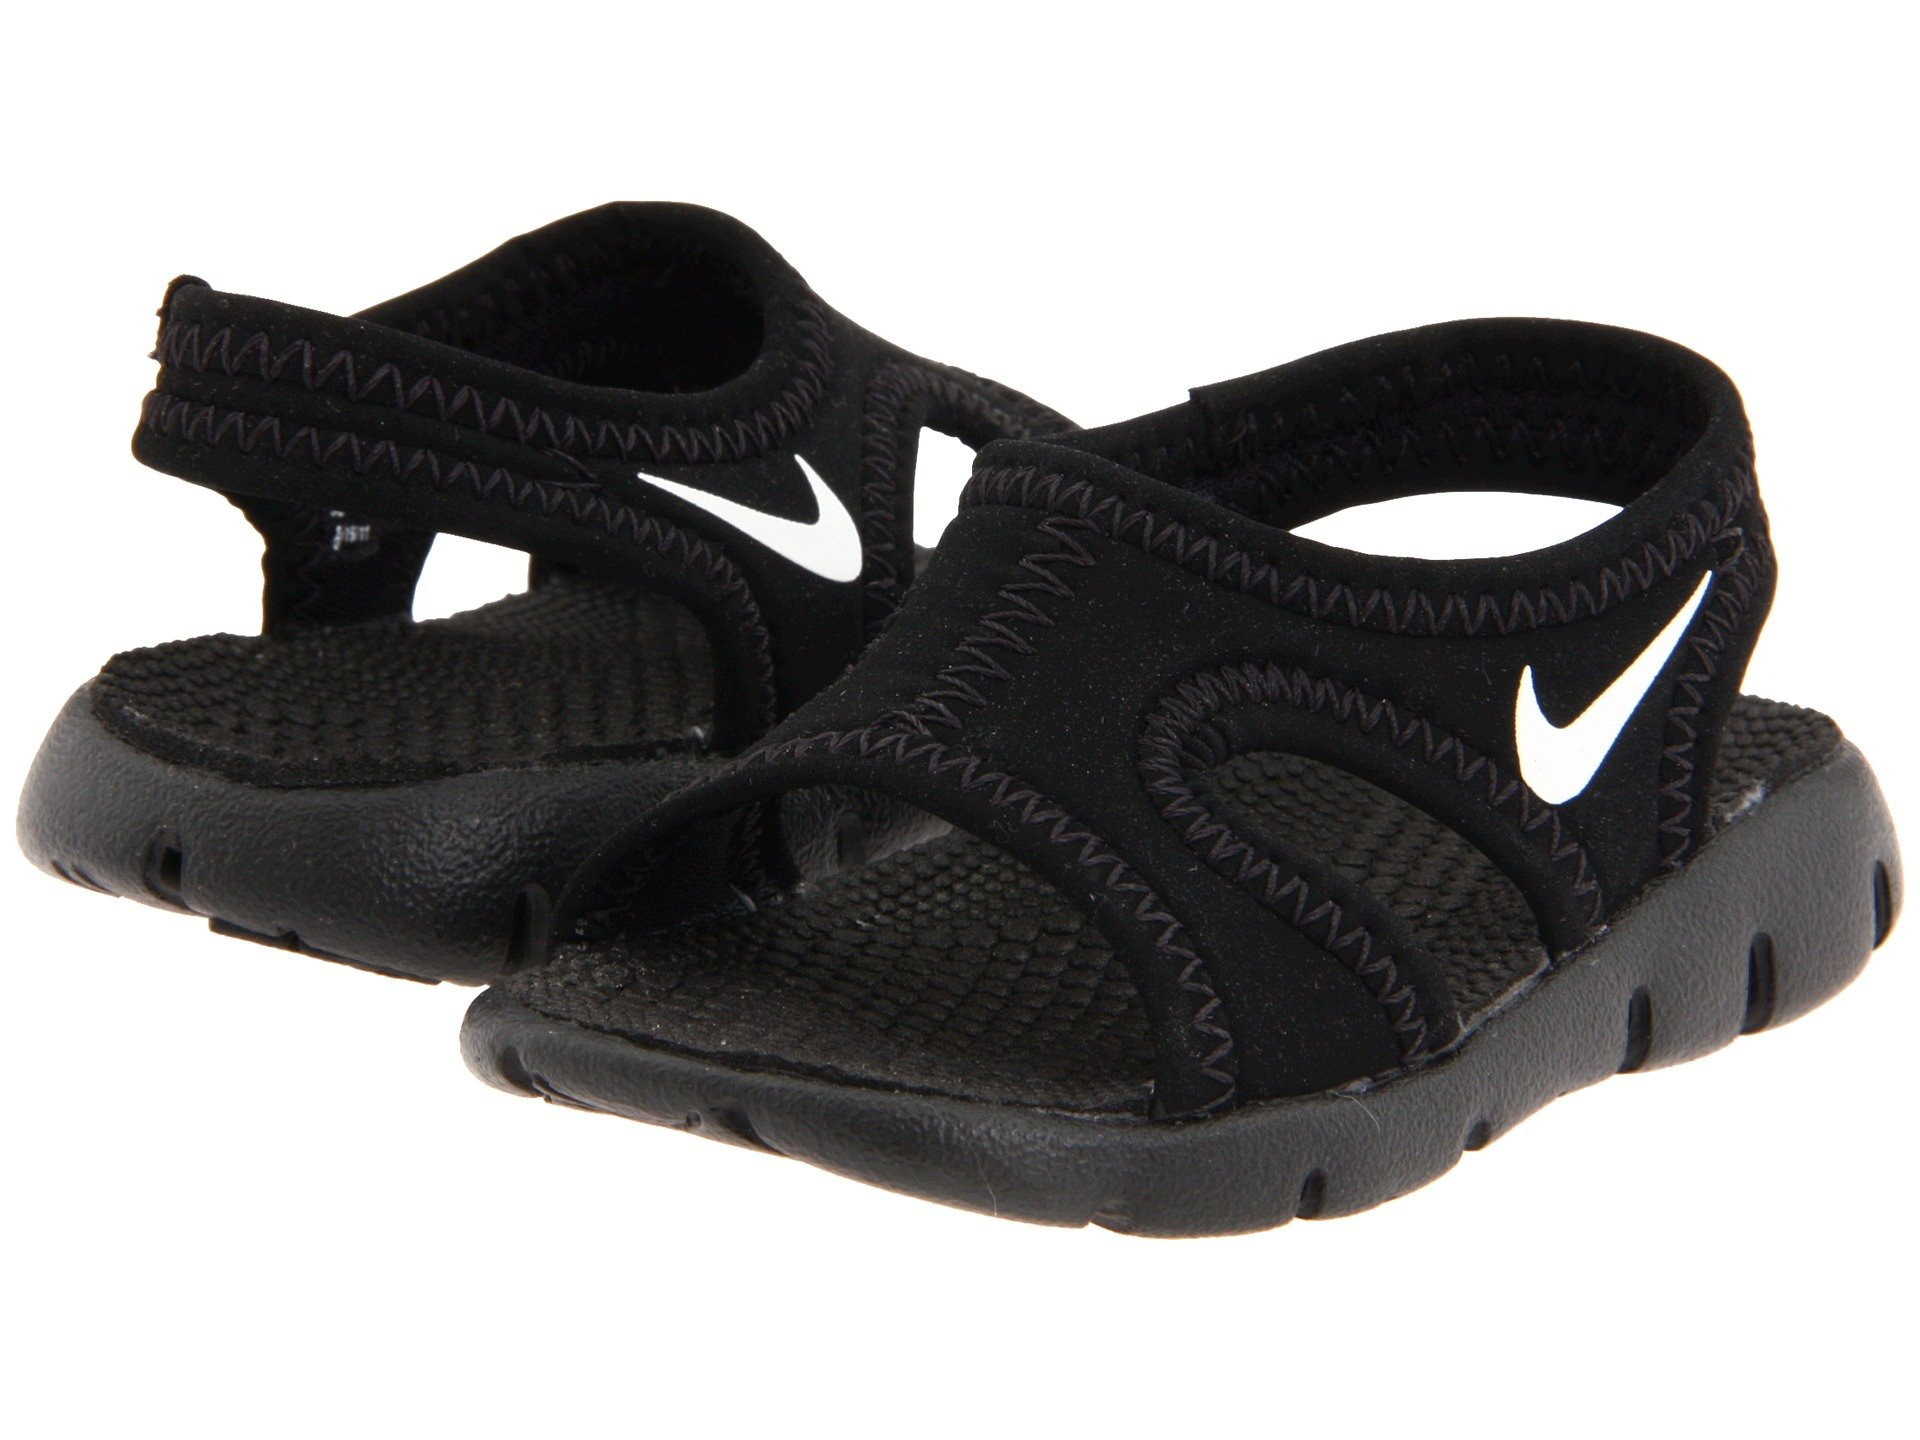 e4fd2de25 Boy s Nike Kids Shoes + FREE SHIPPING